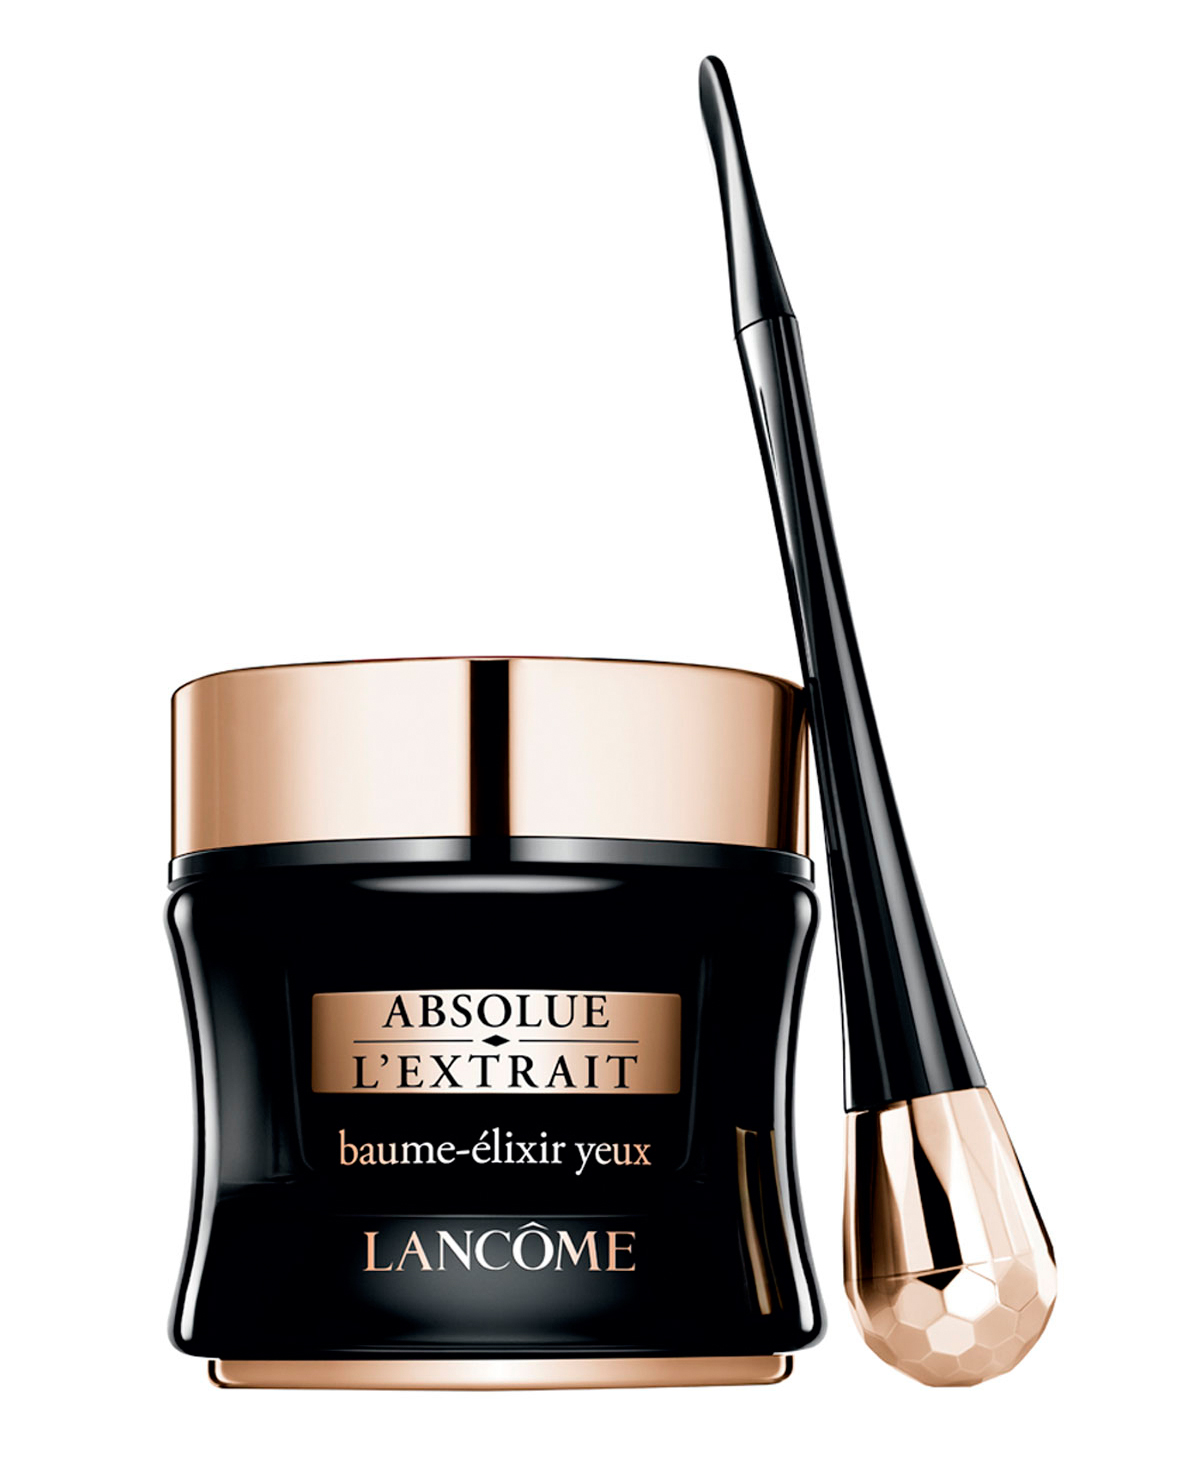 rose-beauty-products-lancome-absolue-lextrait-0615.jpg